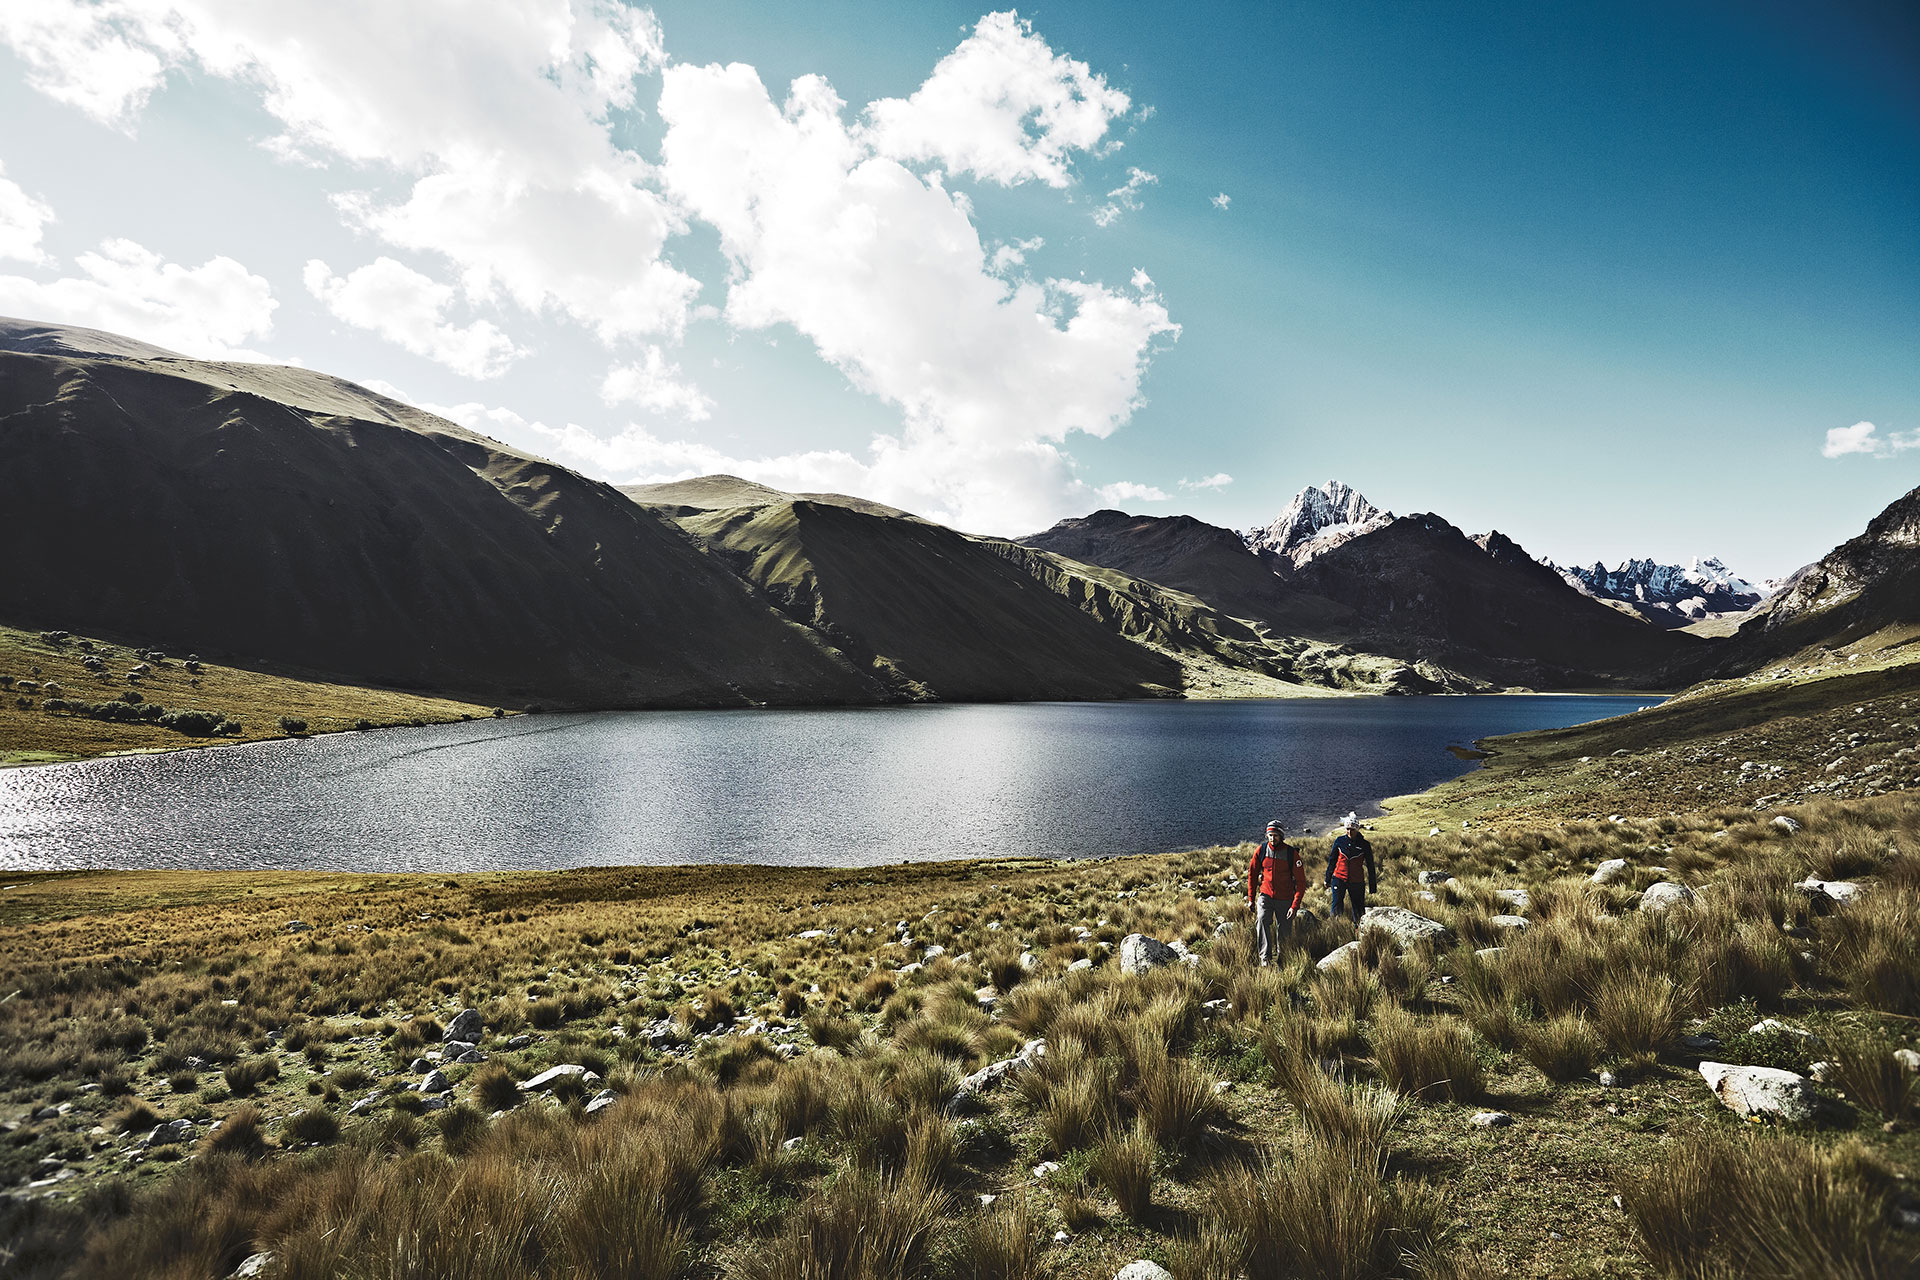 Landschaft See Trekking Wandern Fotograf Outdoor Bergsport Peru International